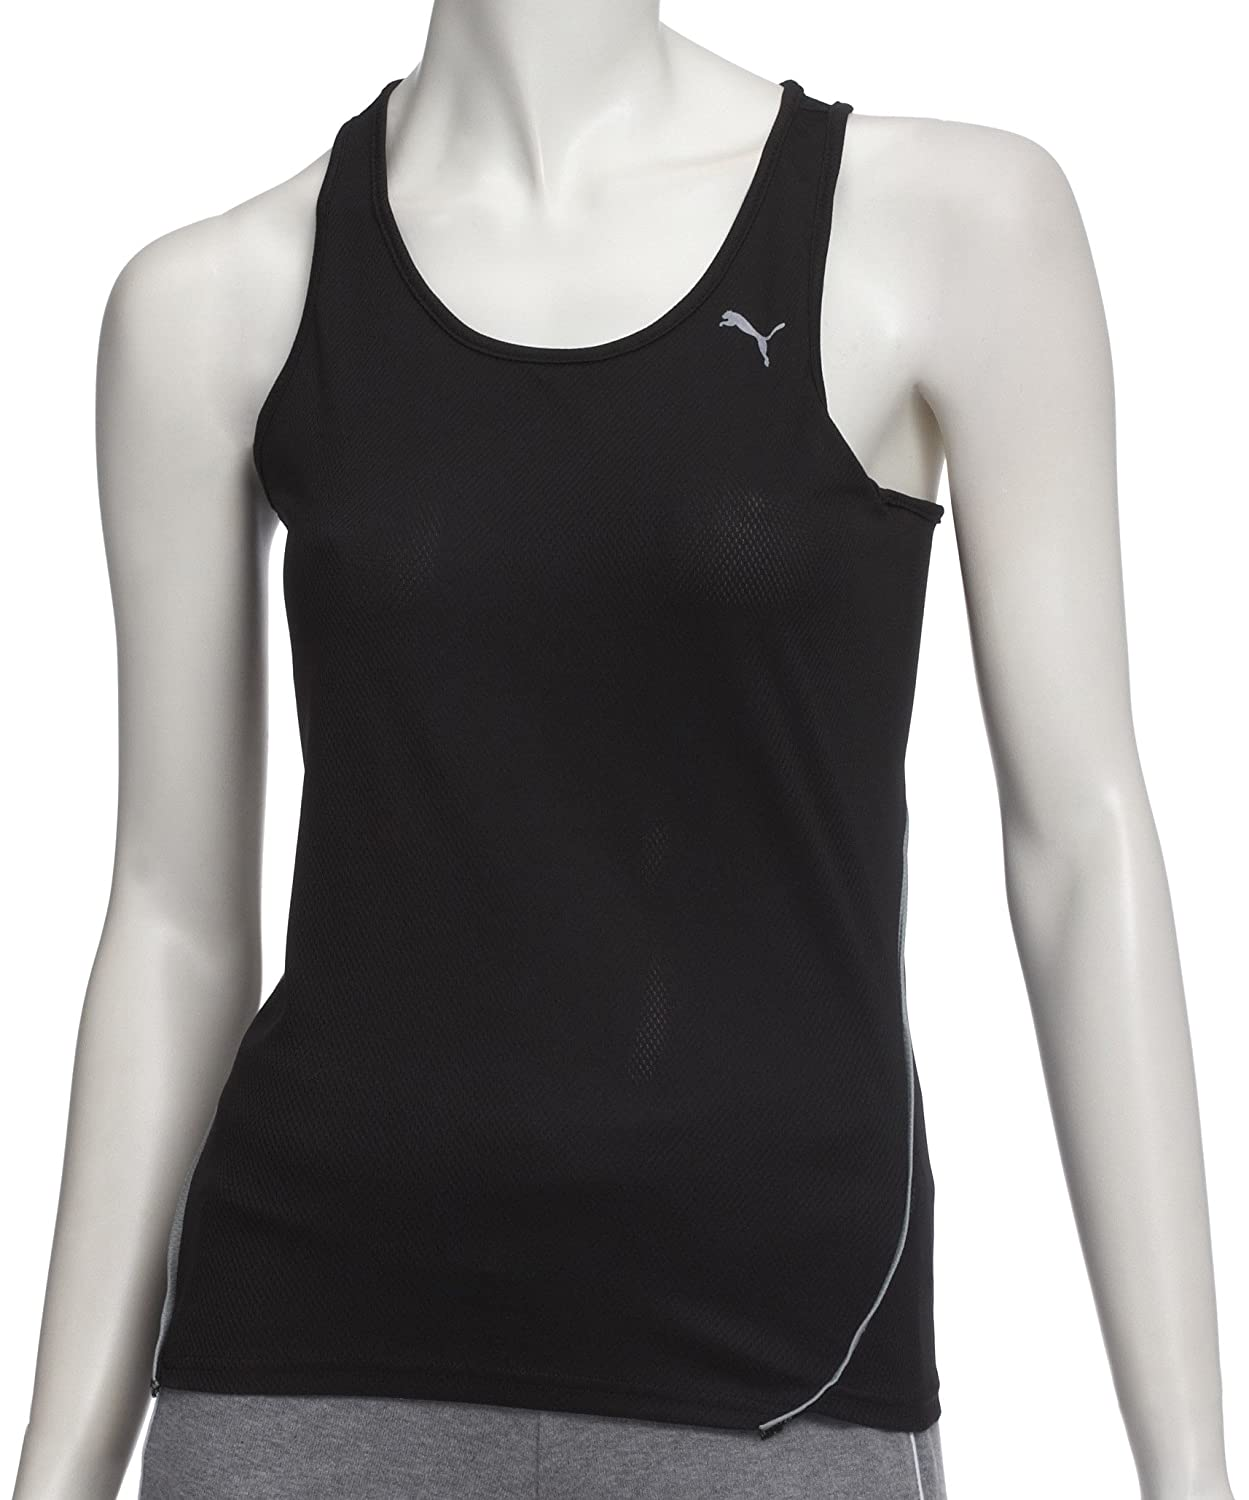 PUMA Damen Top Singlet, Black, S, 504147 01: